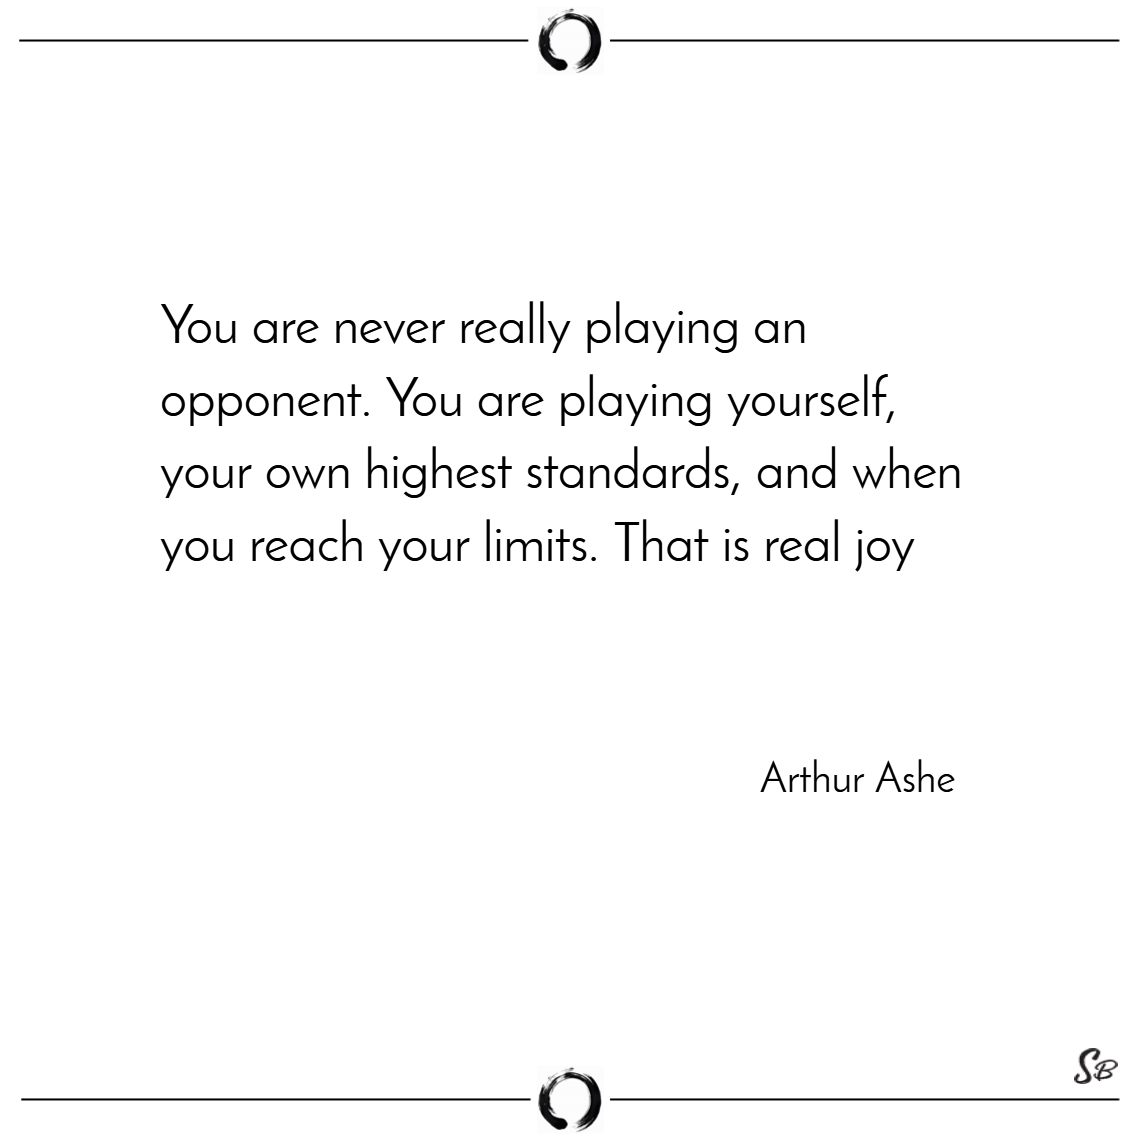 You are never really playing an opponent. you are